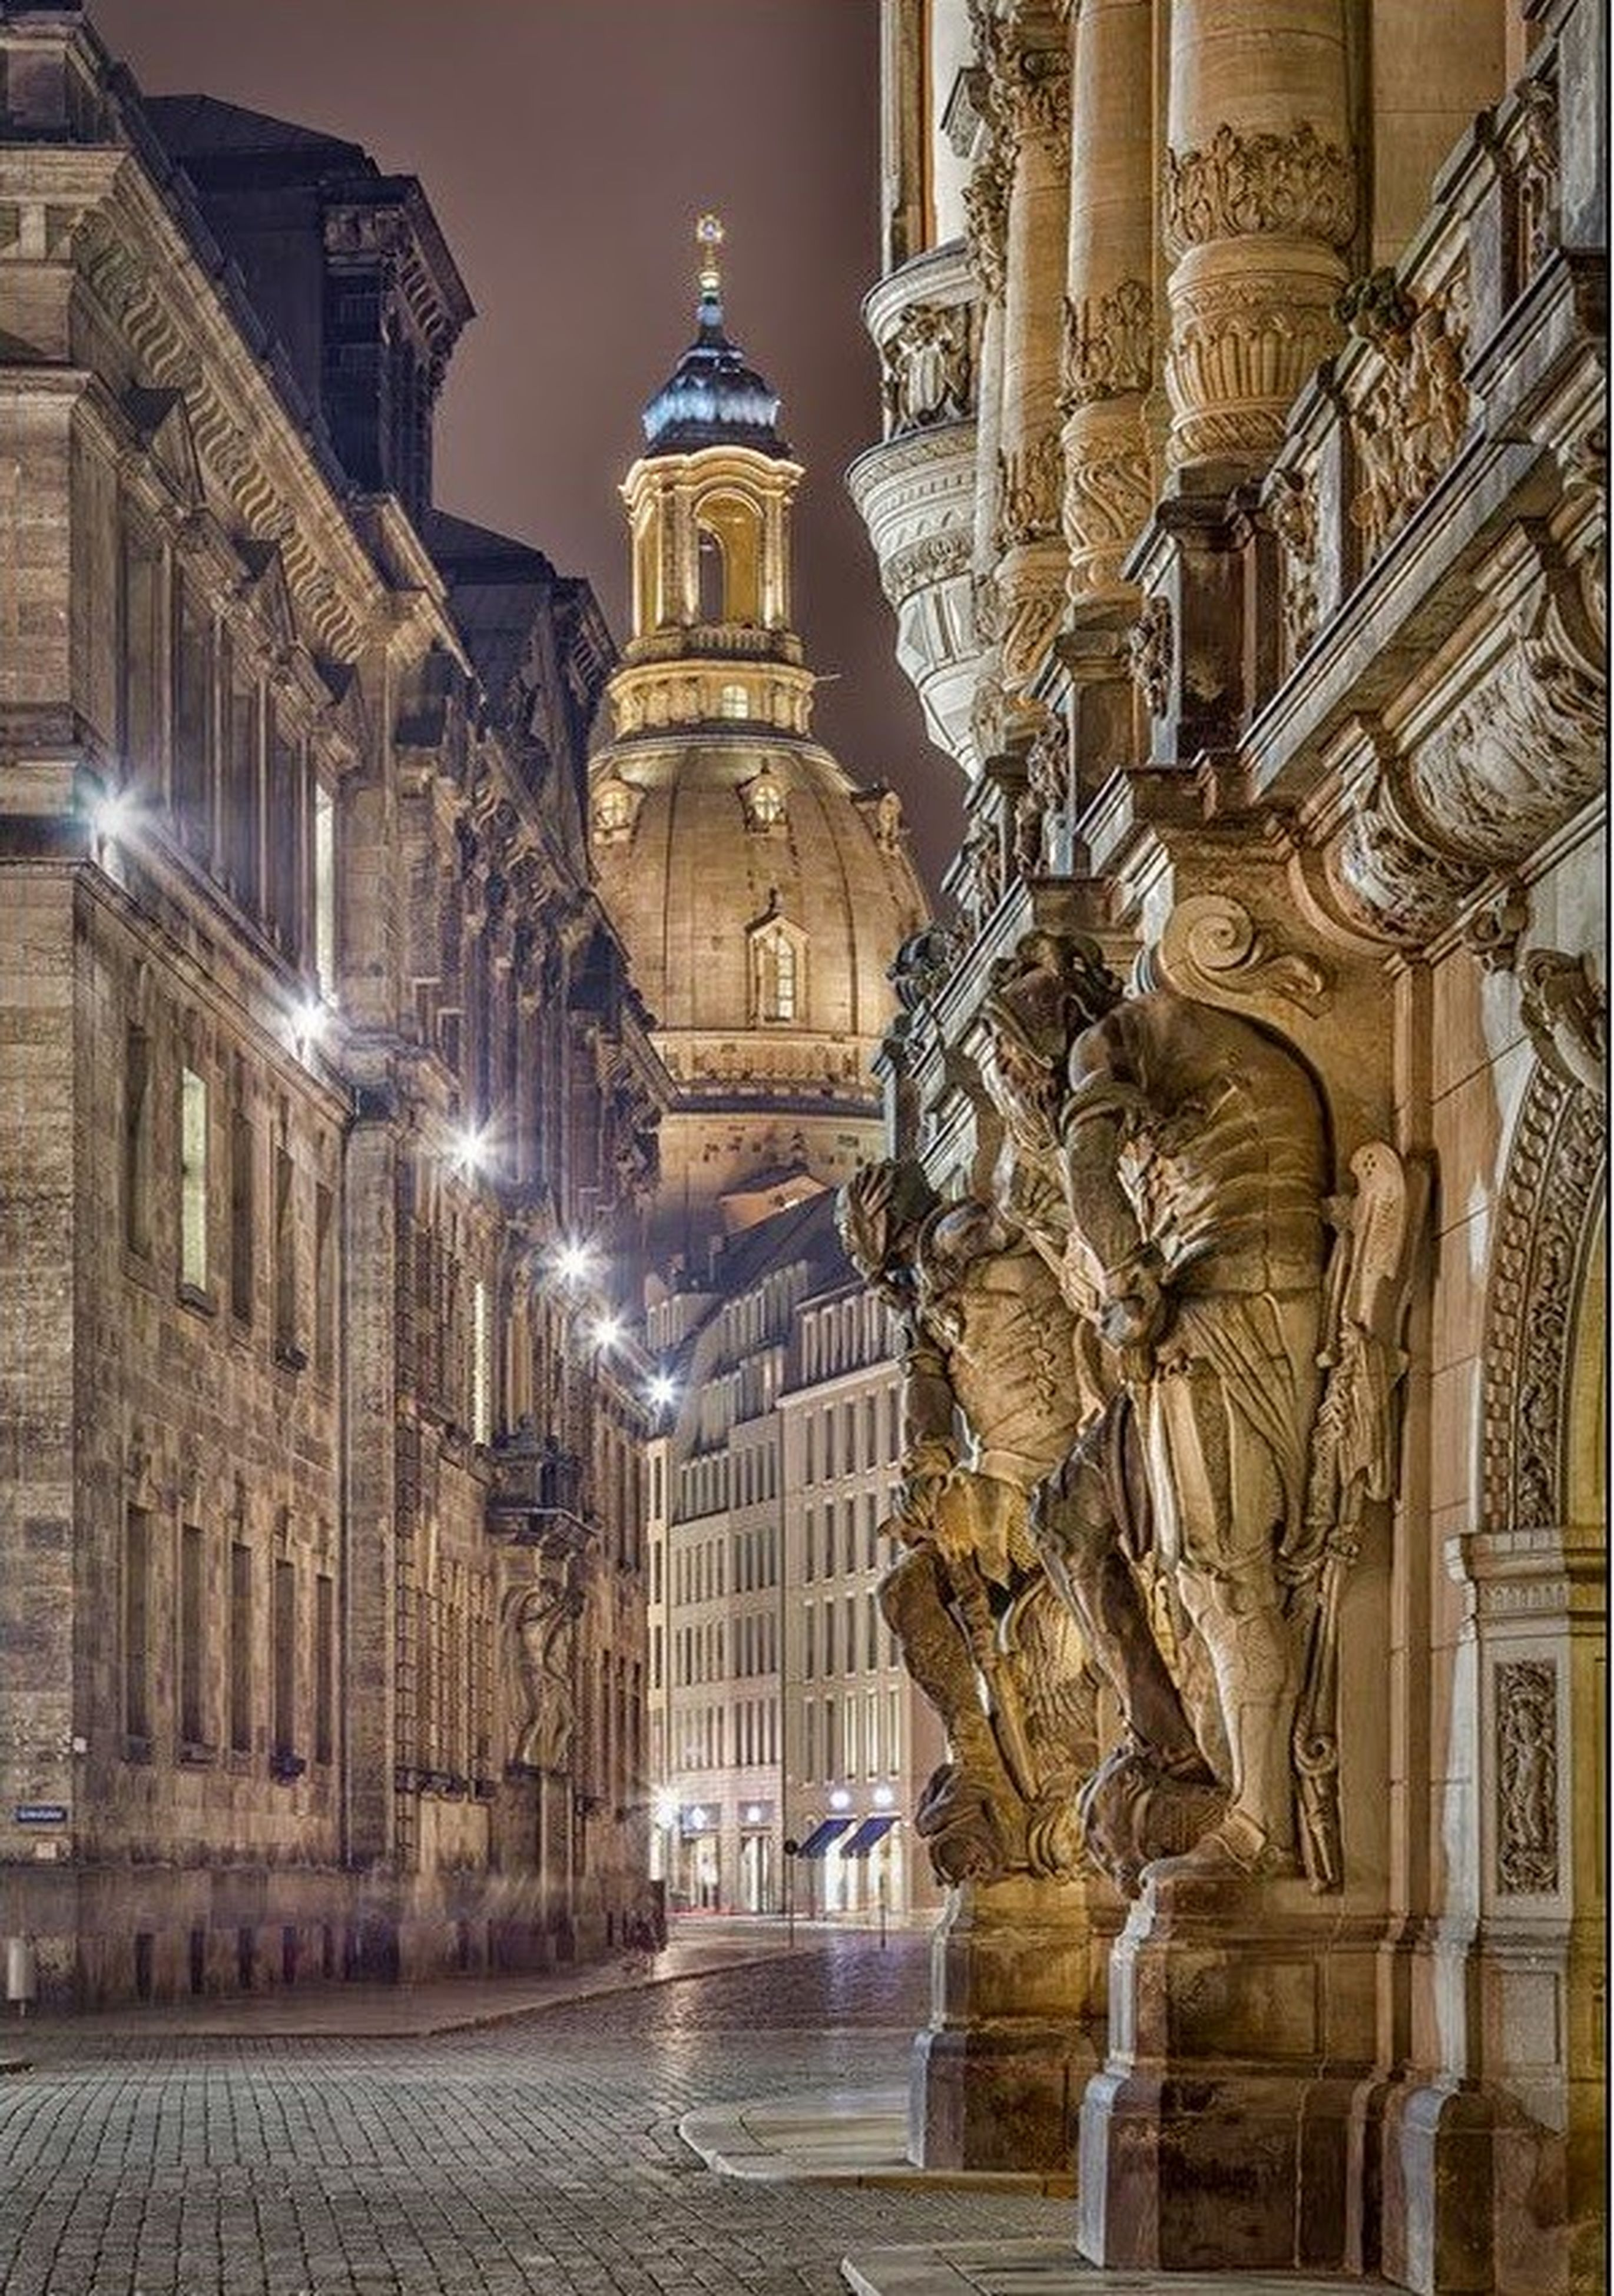 architecture, building exterior, built structure, religion, place of worship, church, spirituality, cathedral, travel destinations, famous place, illuminated, low angle view, city, history, night, tourism, travel, lighting equipment